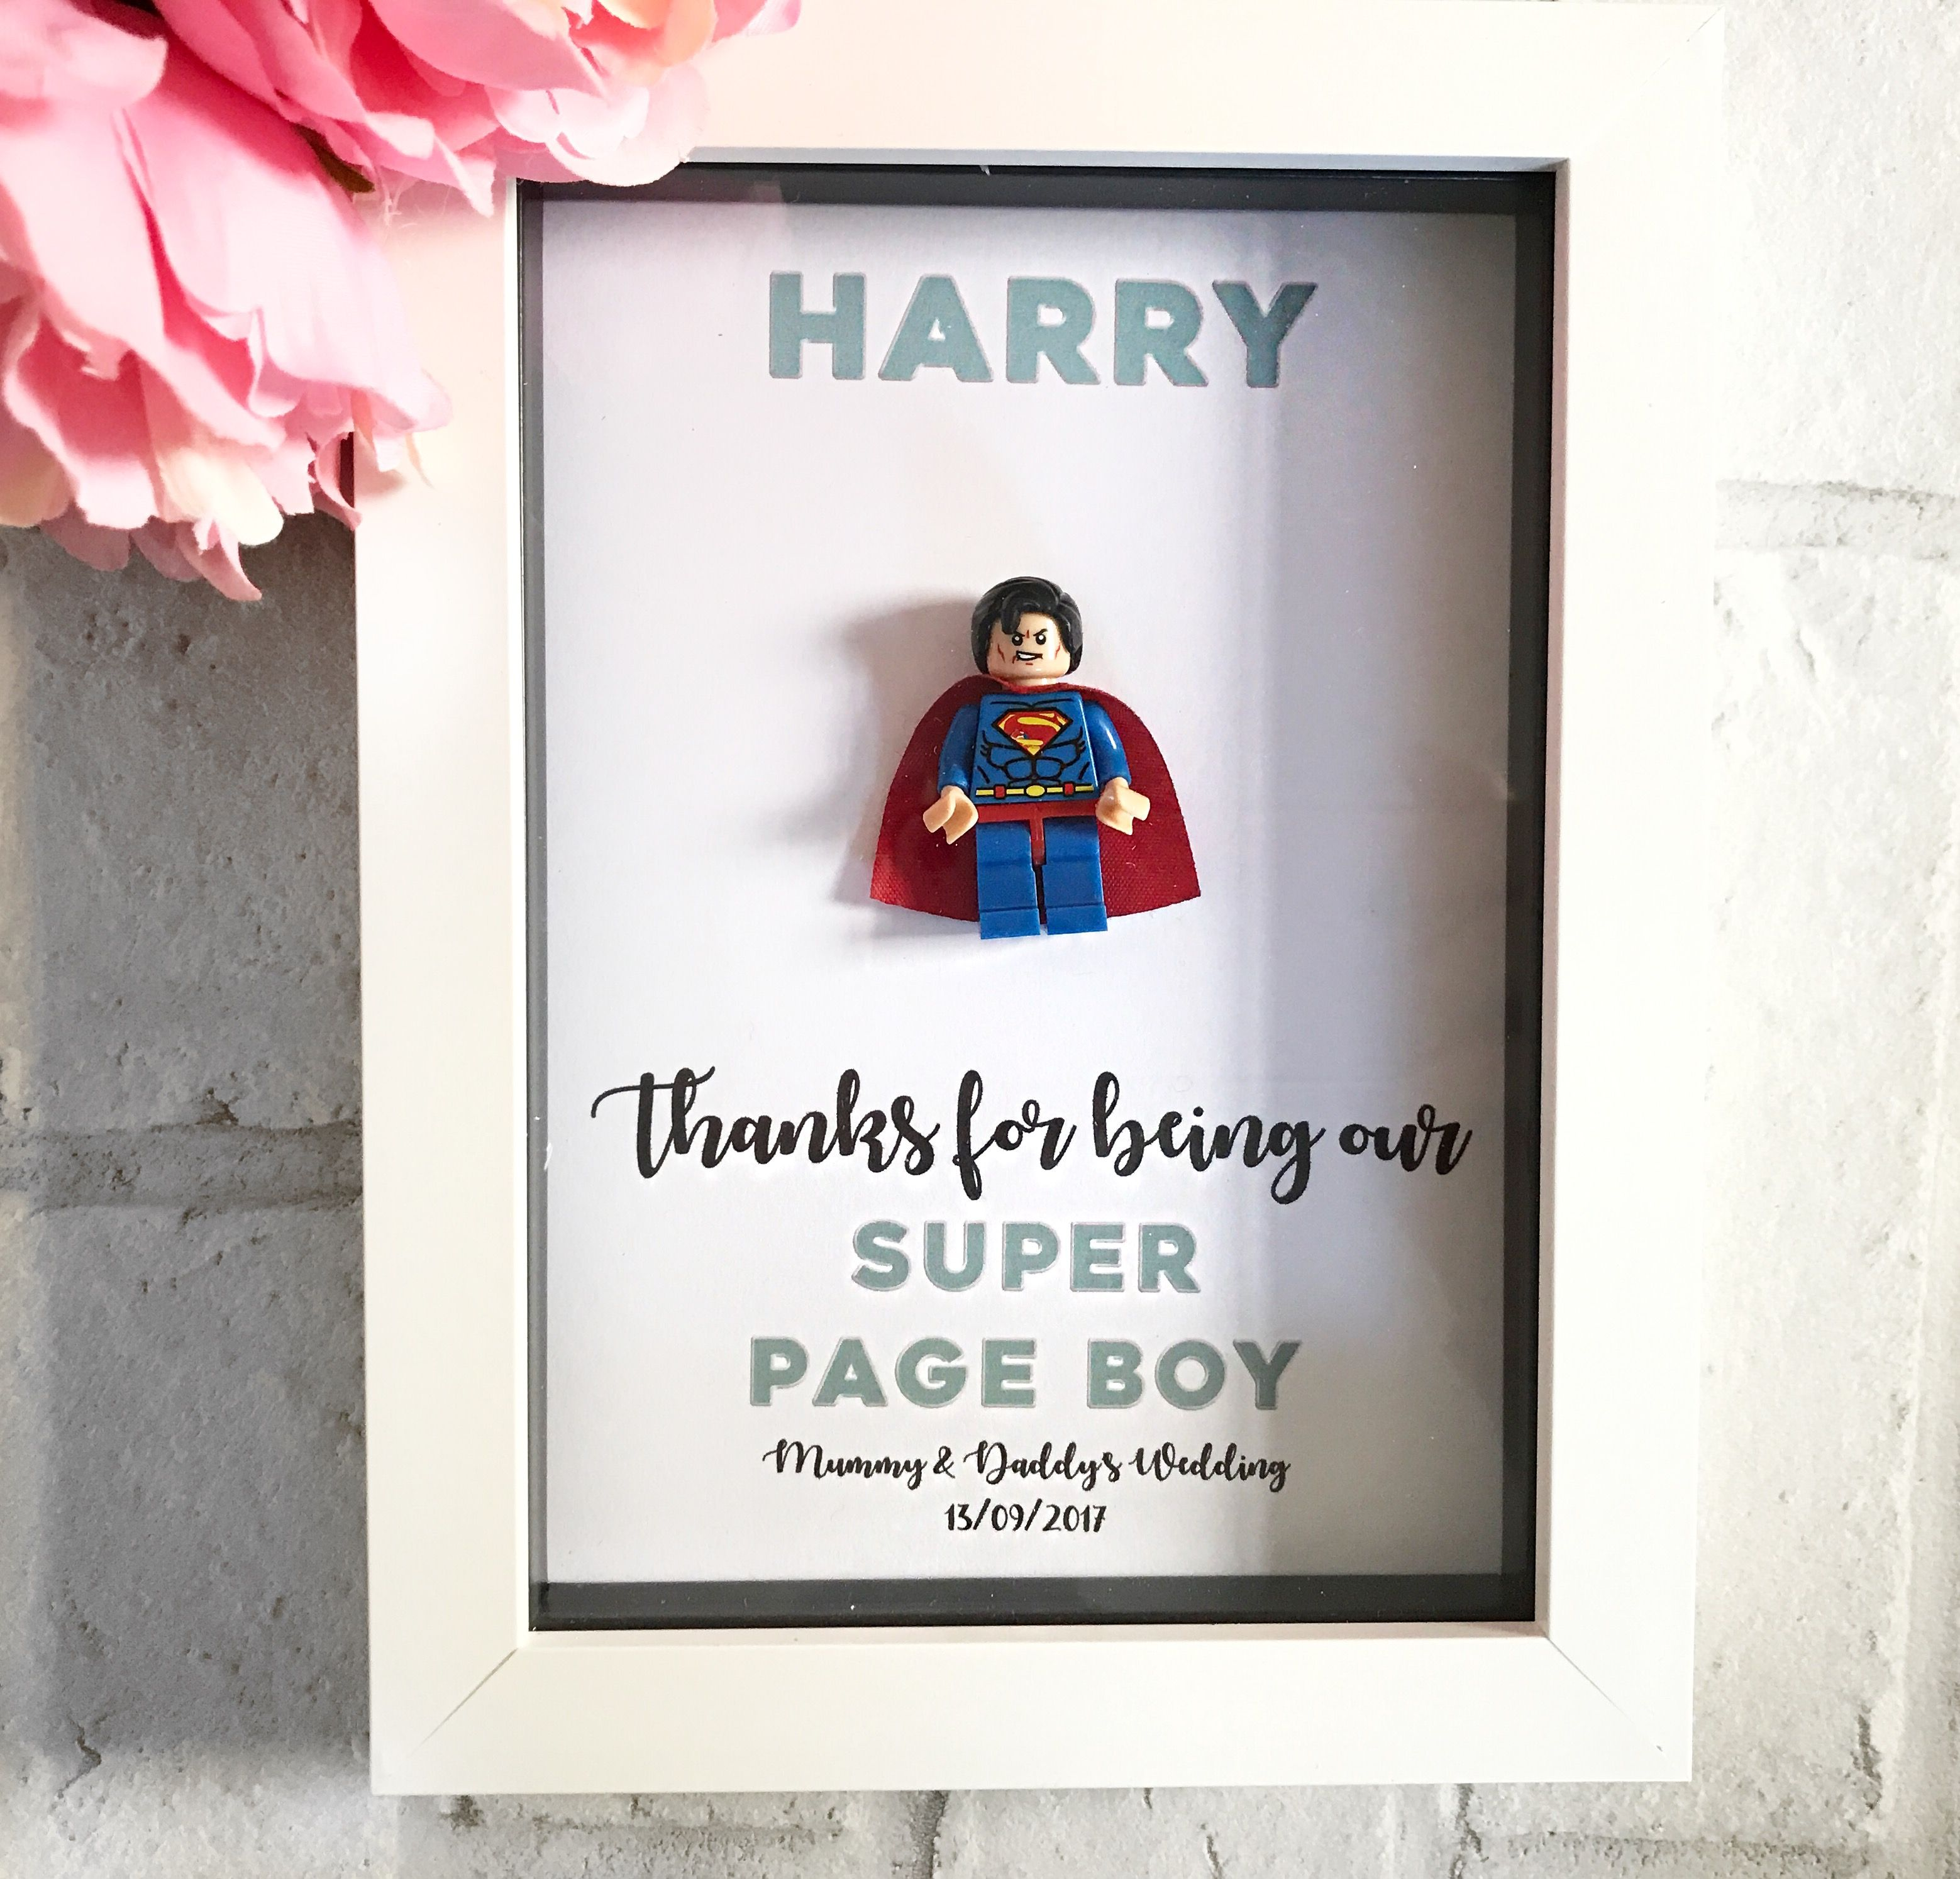 Page Boy Gifts Wedding Gifts Best Man Gifts Gifts For Best Man